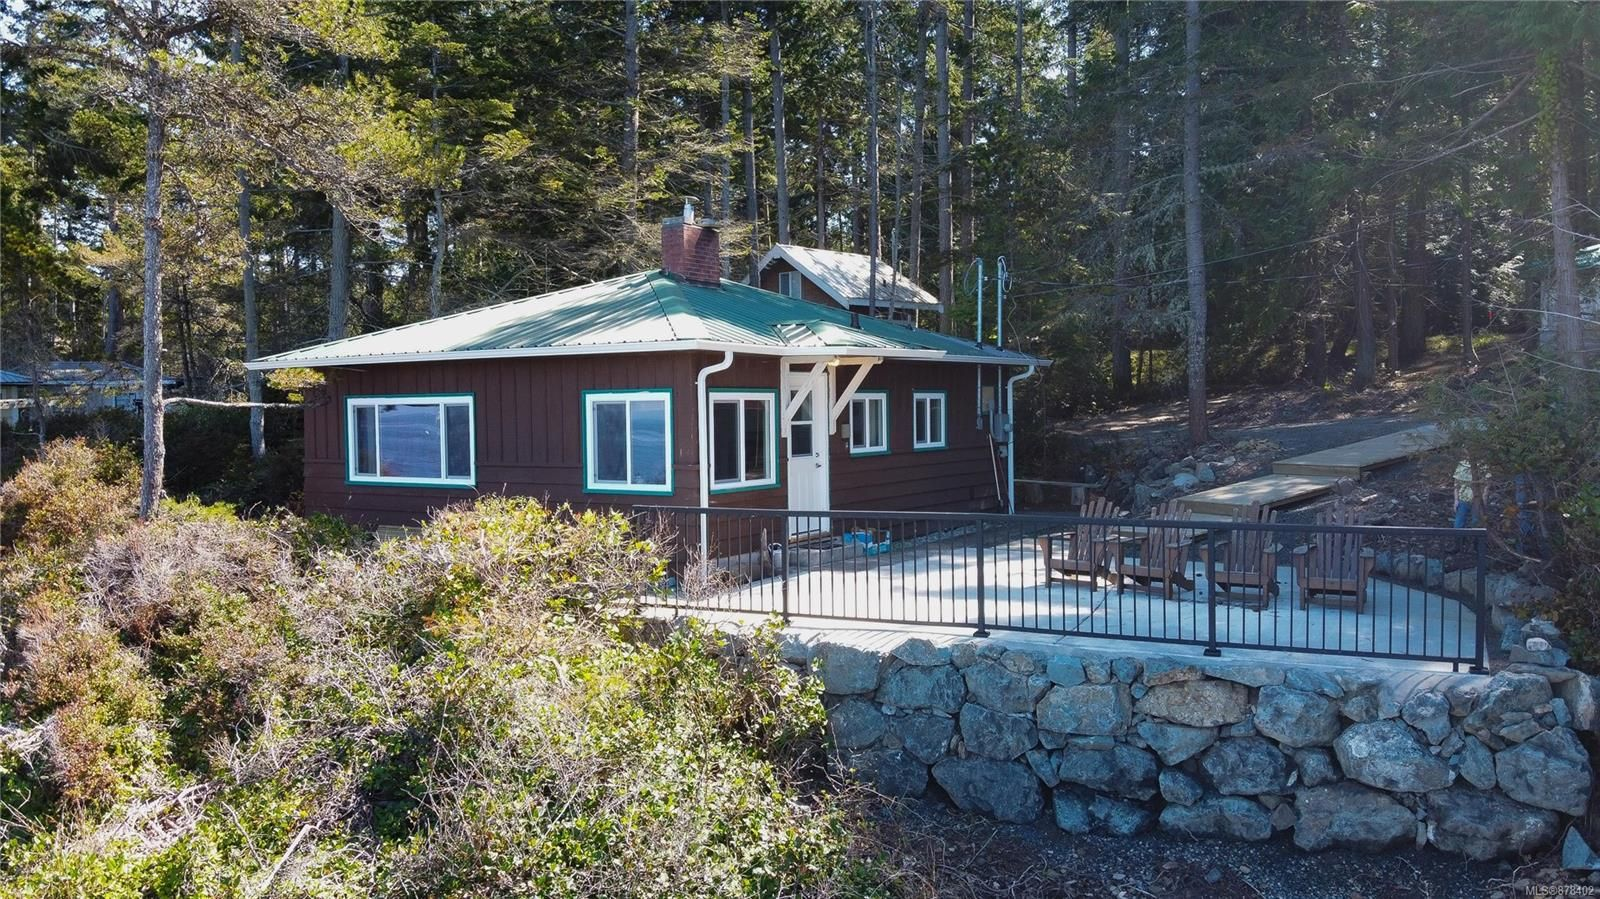 Main Photo: 570 Berry Point Rd in : Isl Gabriola Island House for sale (Islands)  : MLS®# 878402